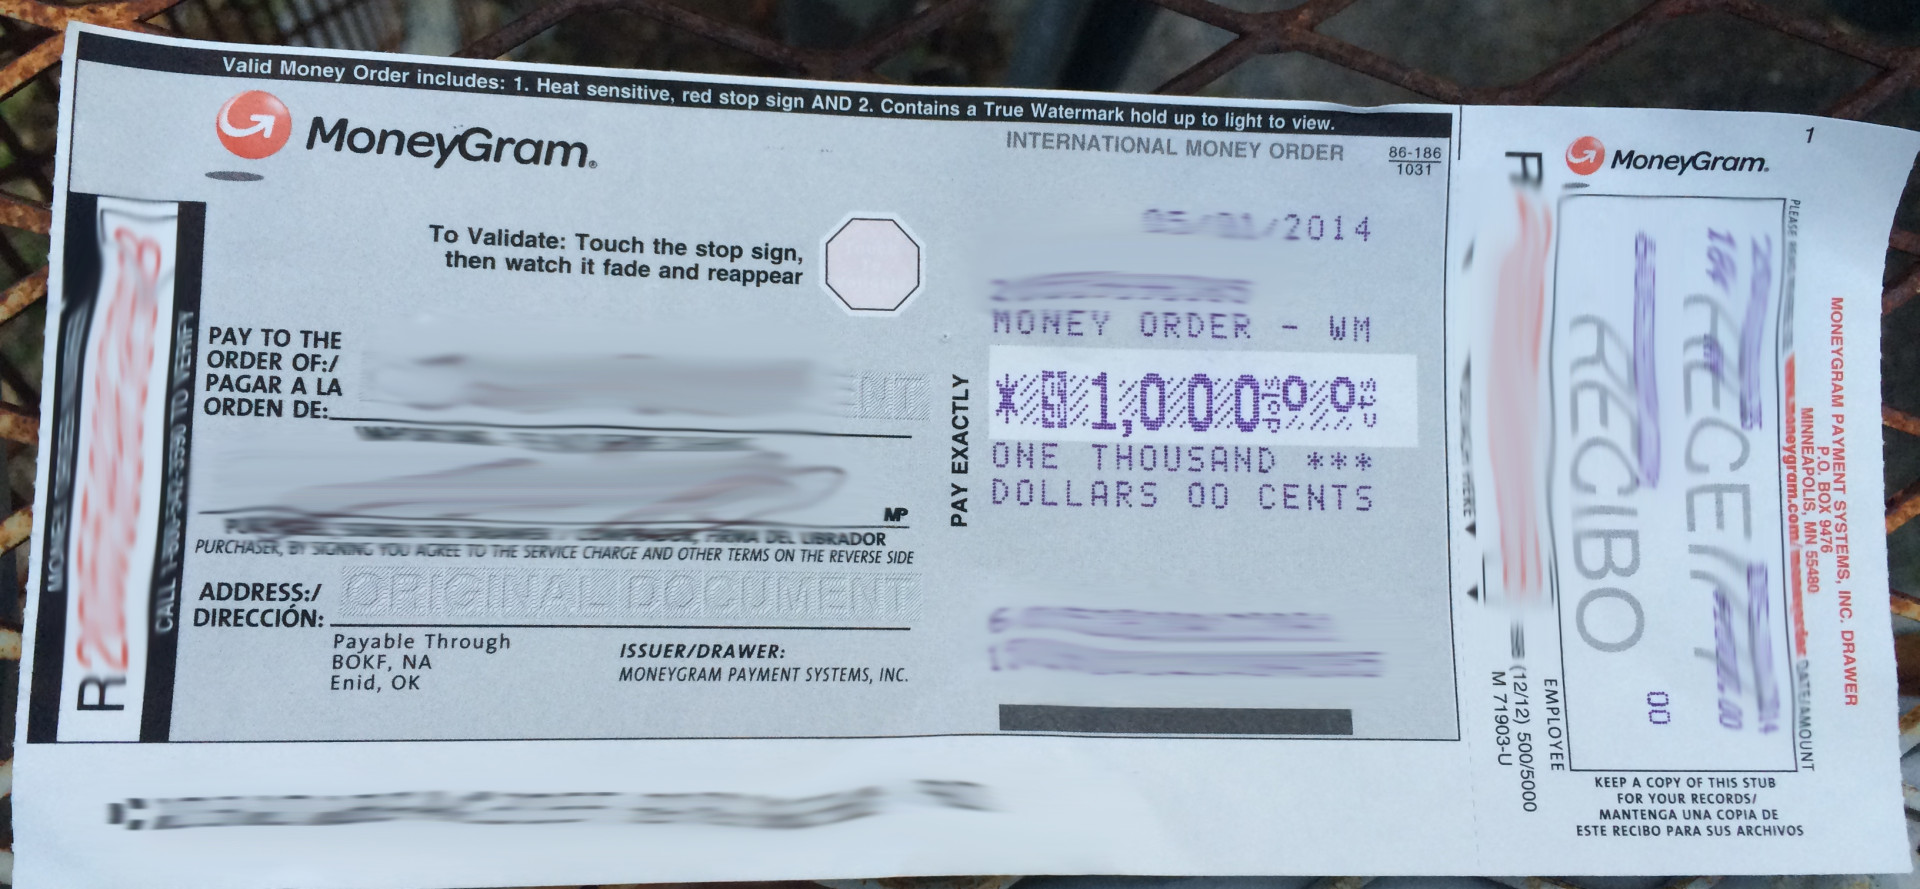 Bank Routing Number On Check